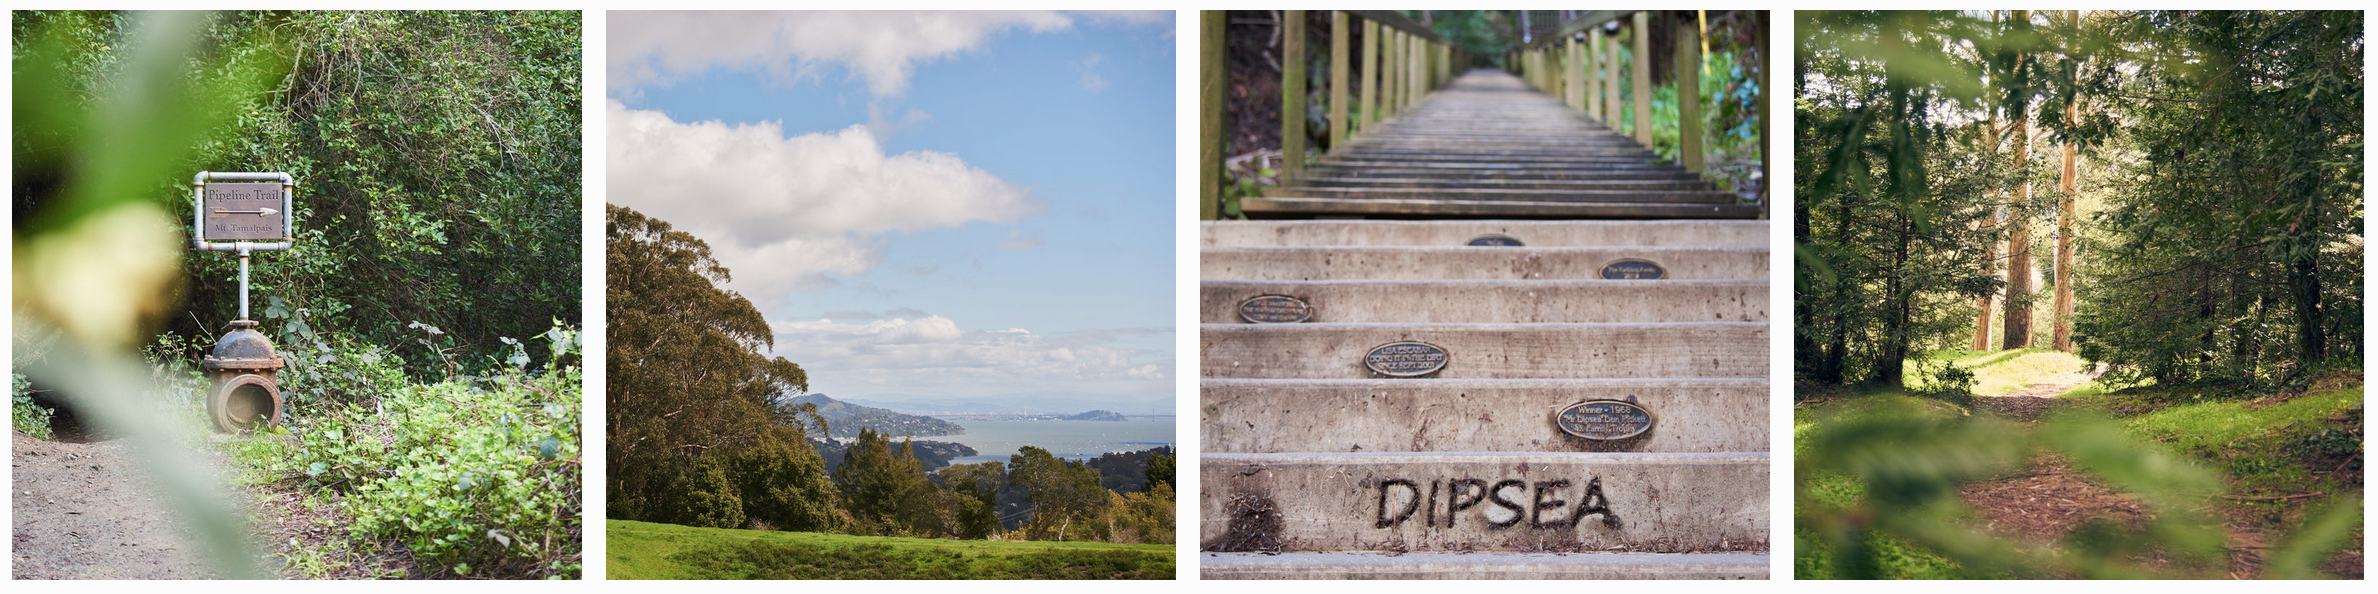 L to R: the Pipeline Trailhead, Edgewood Park open space, the Dipsea stairs, Edgewood Park trailhead